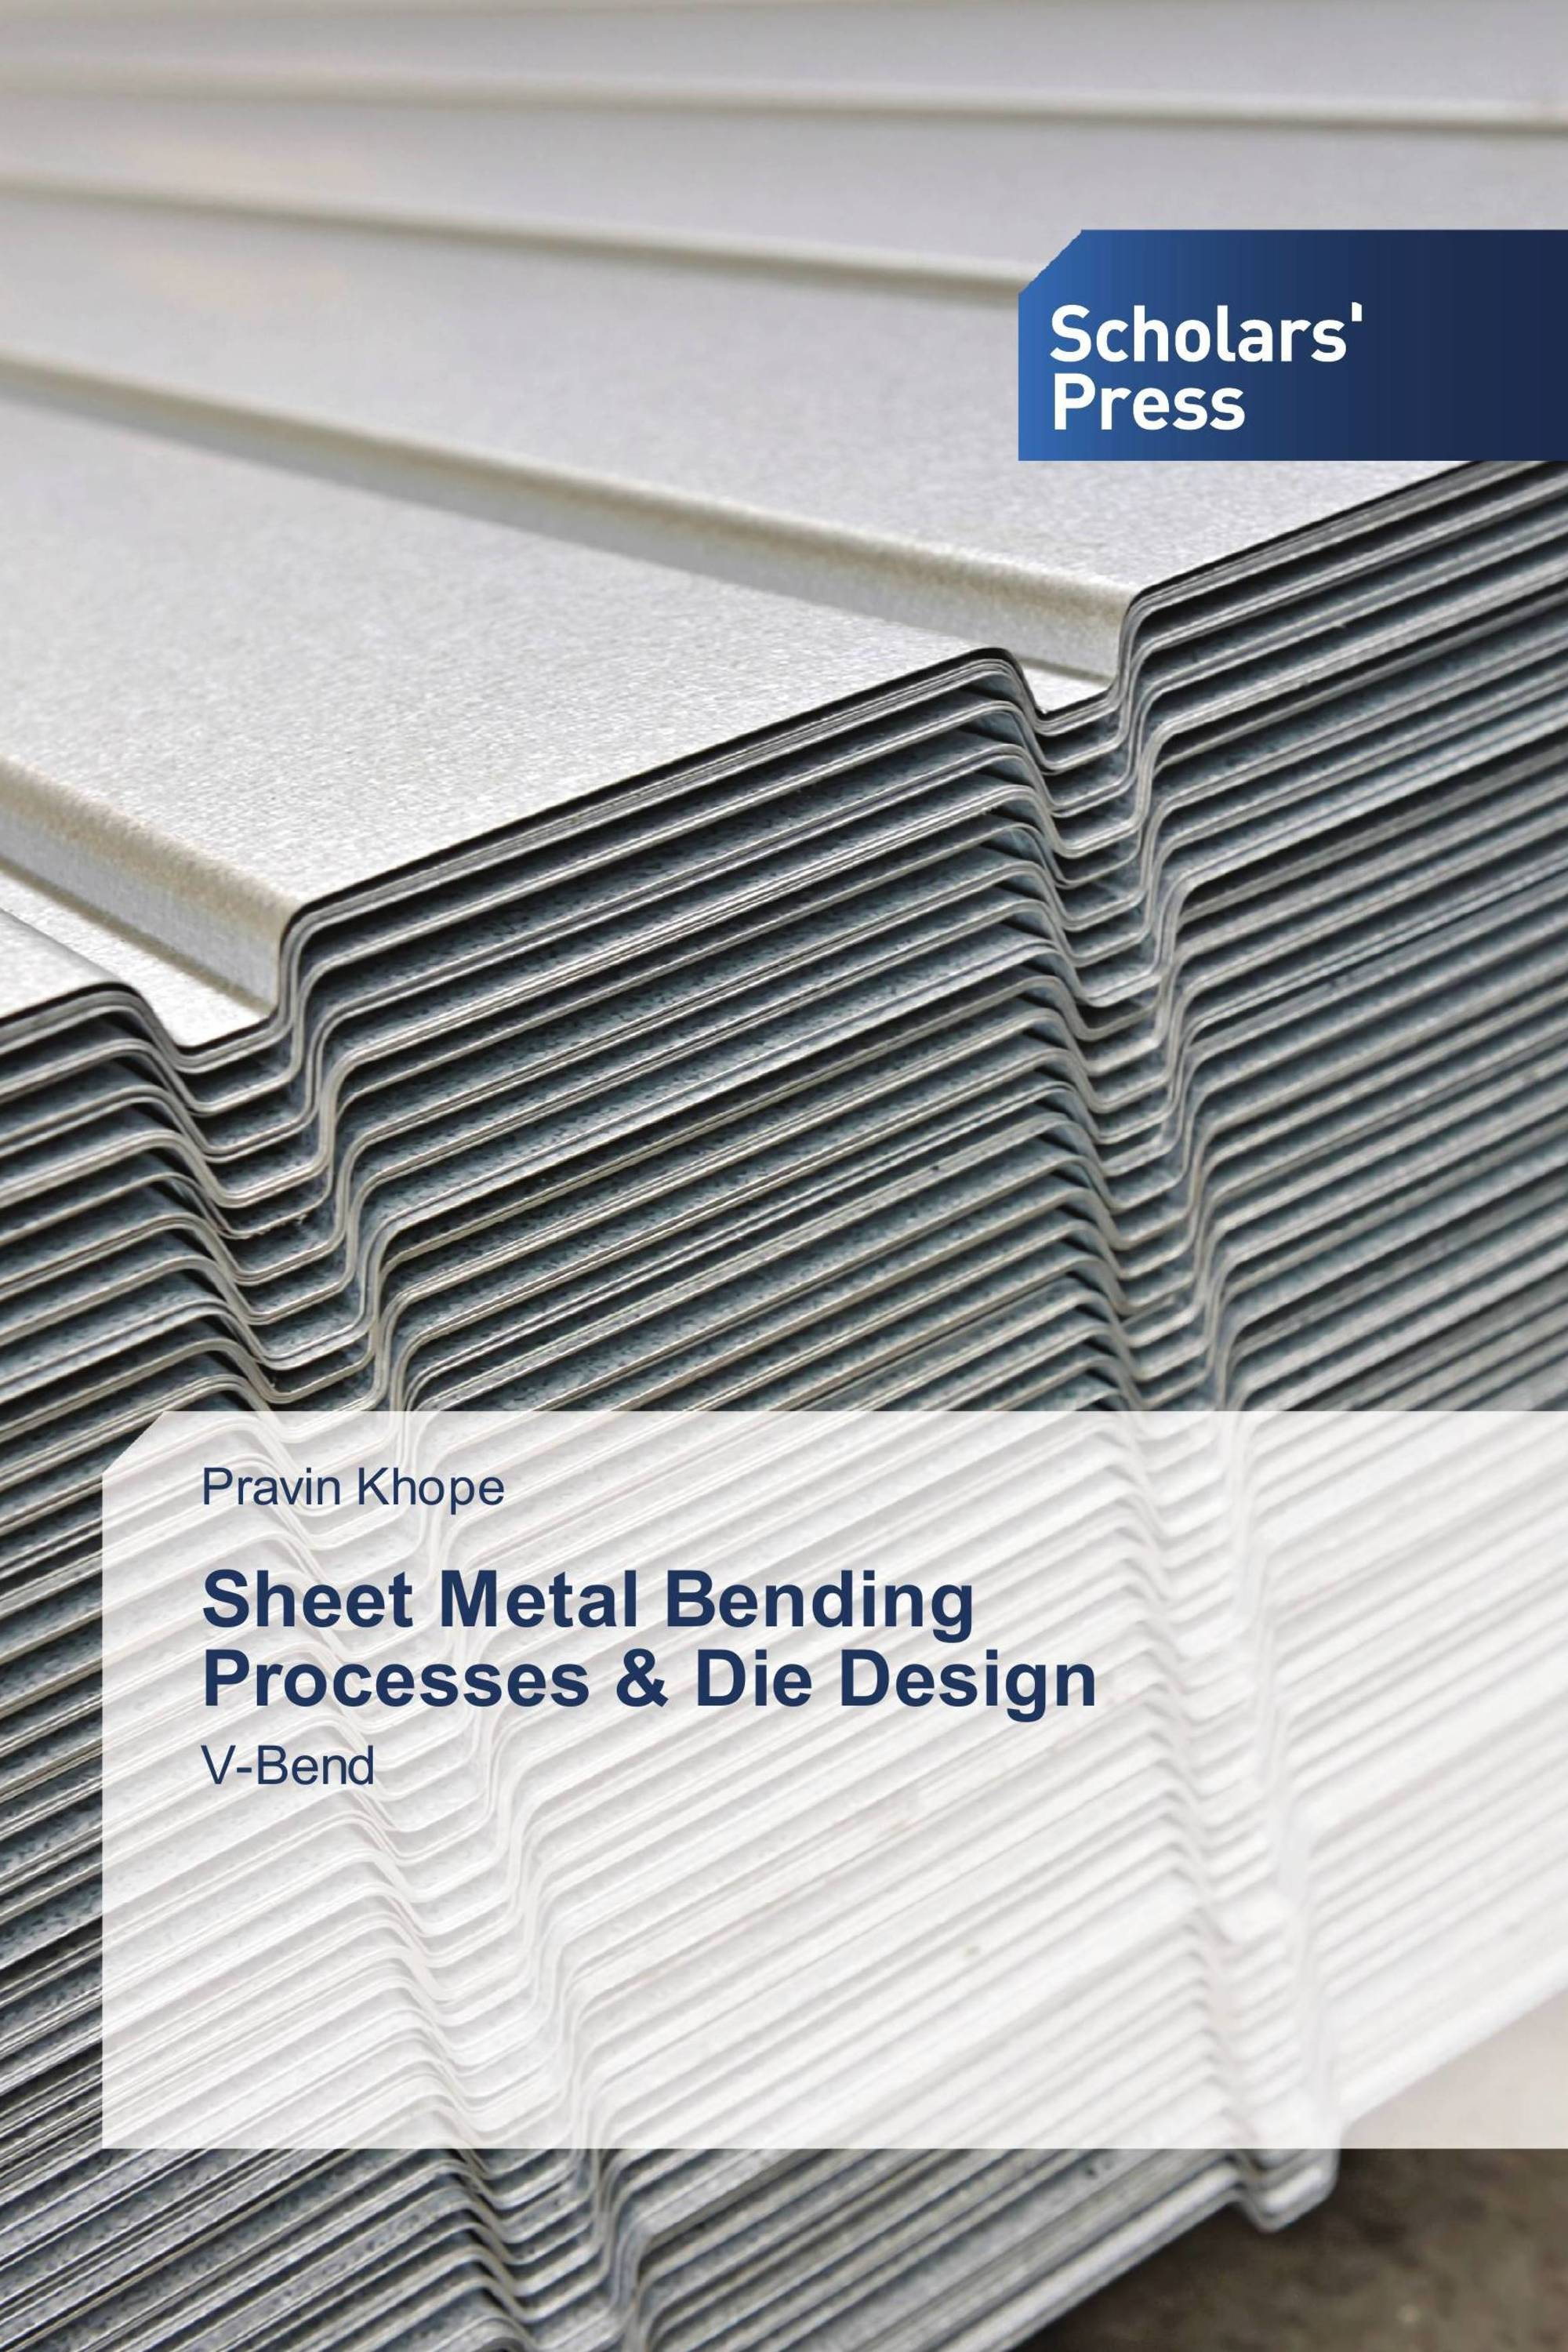 Sheet Metal Bending Processes & Die Design